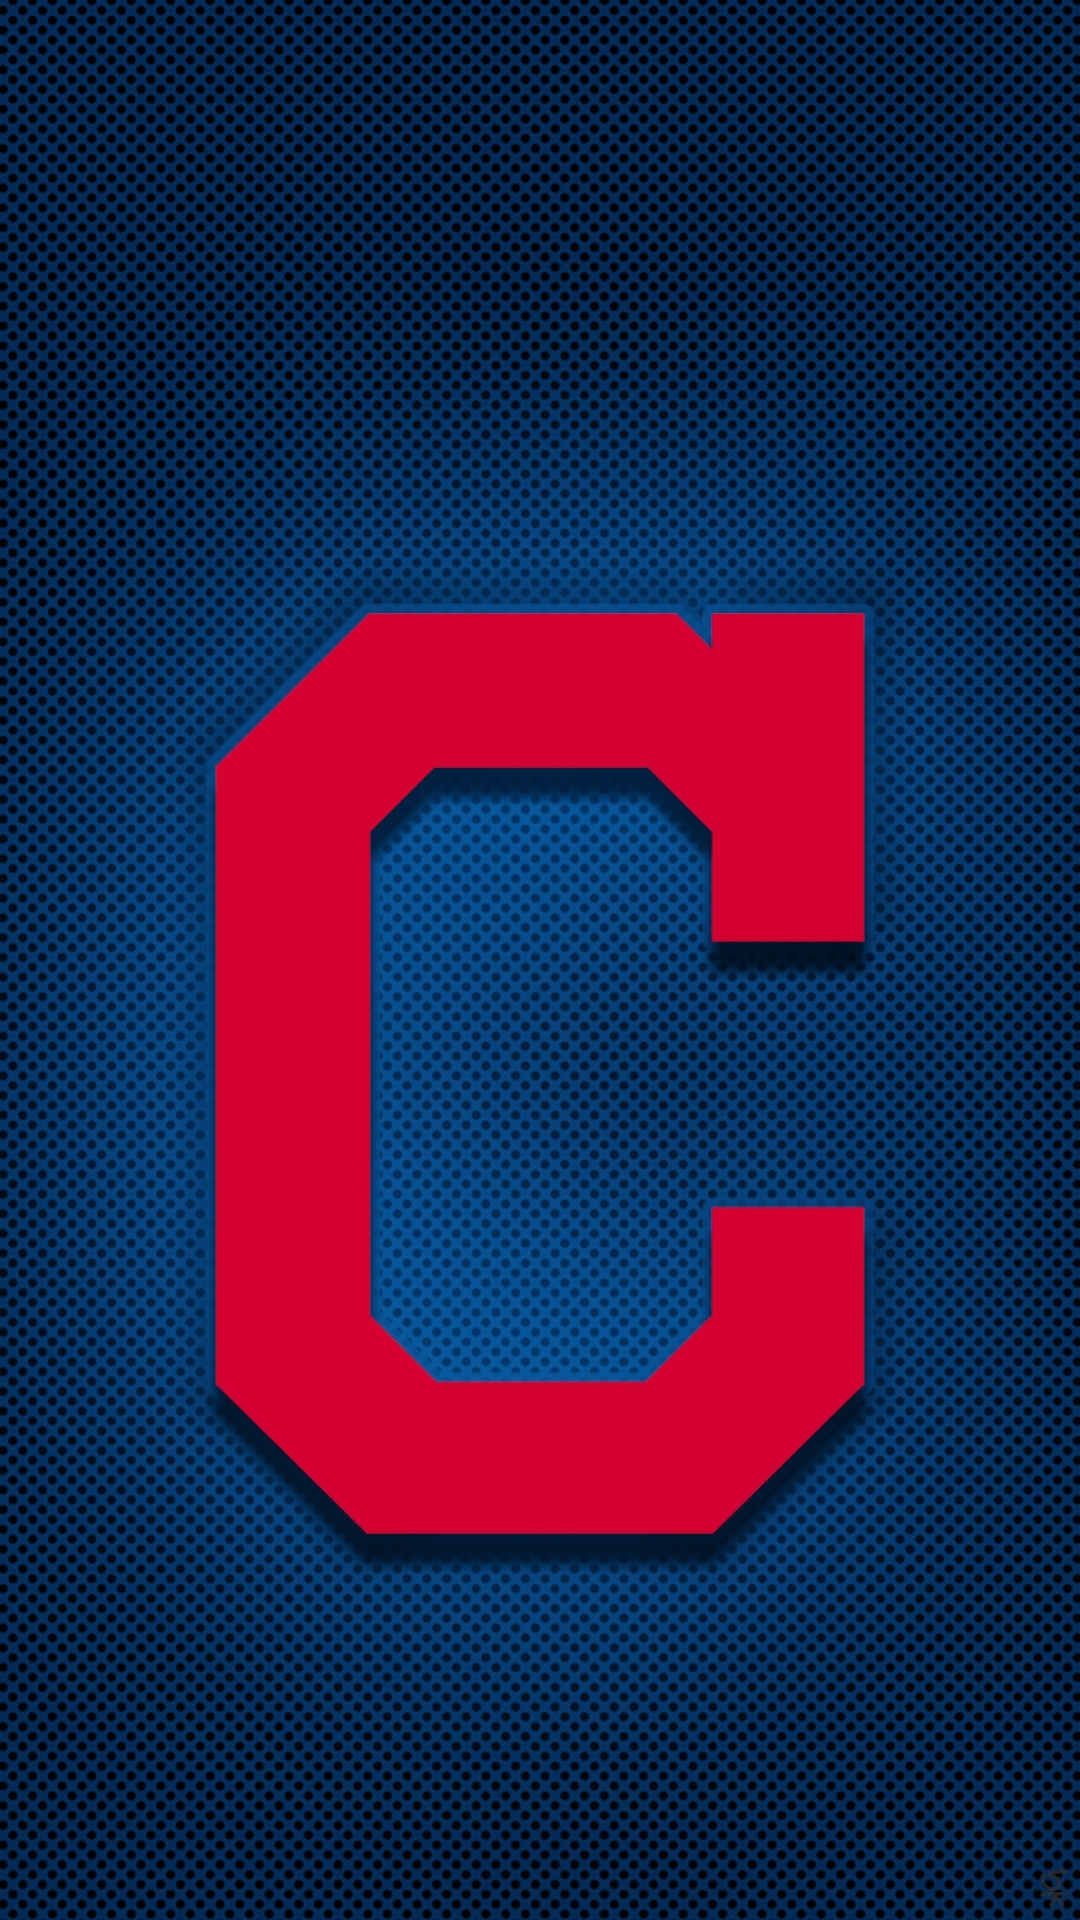 cleveland indians hd wallpaper (74+ images)